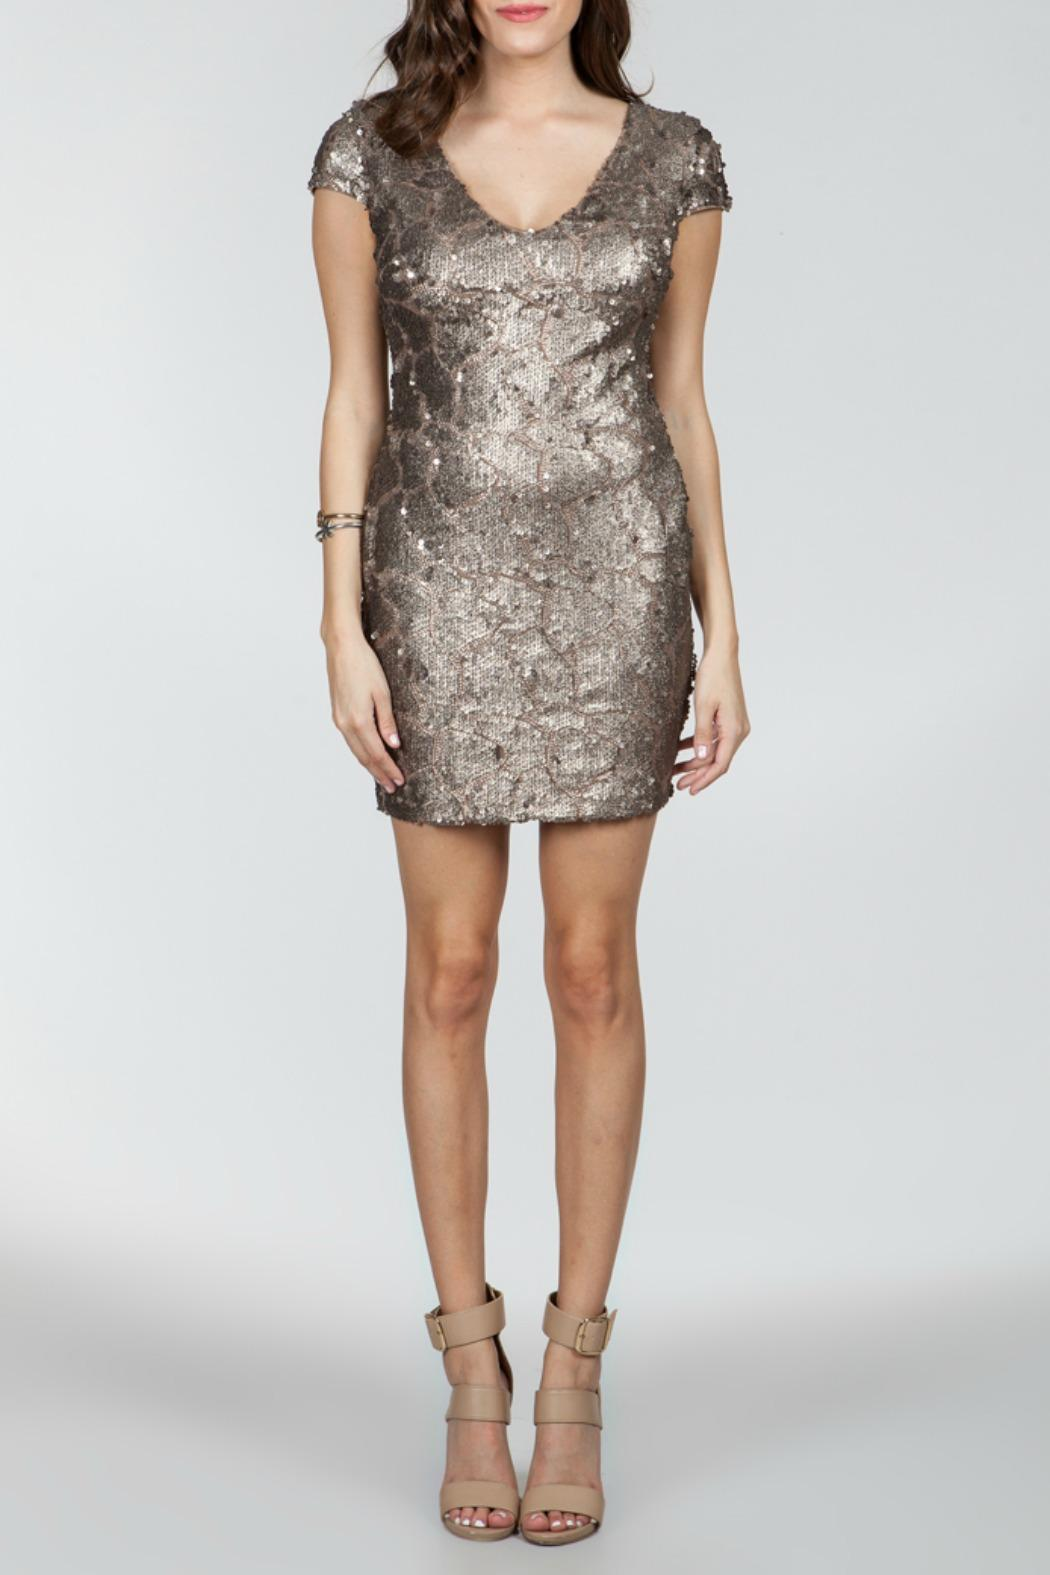 Ark & Co. Sequin Cocktail Dress from Texas by BareTrees Boutique ...